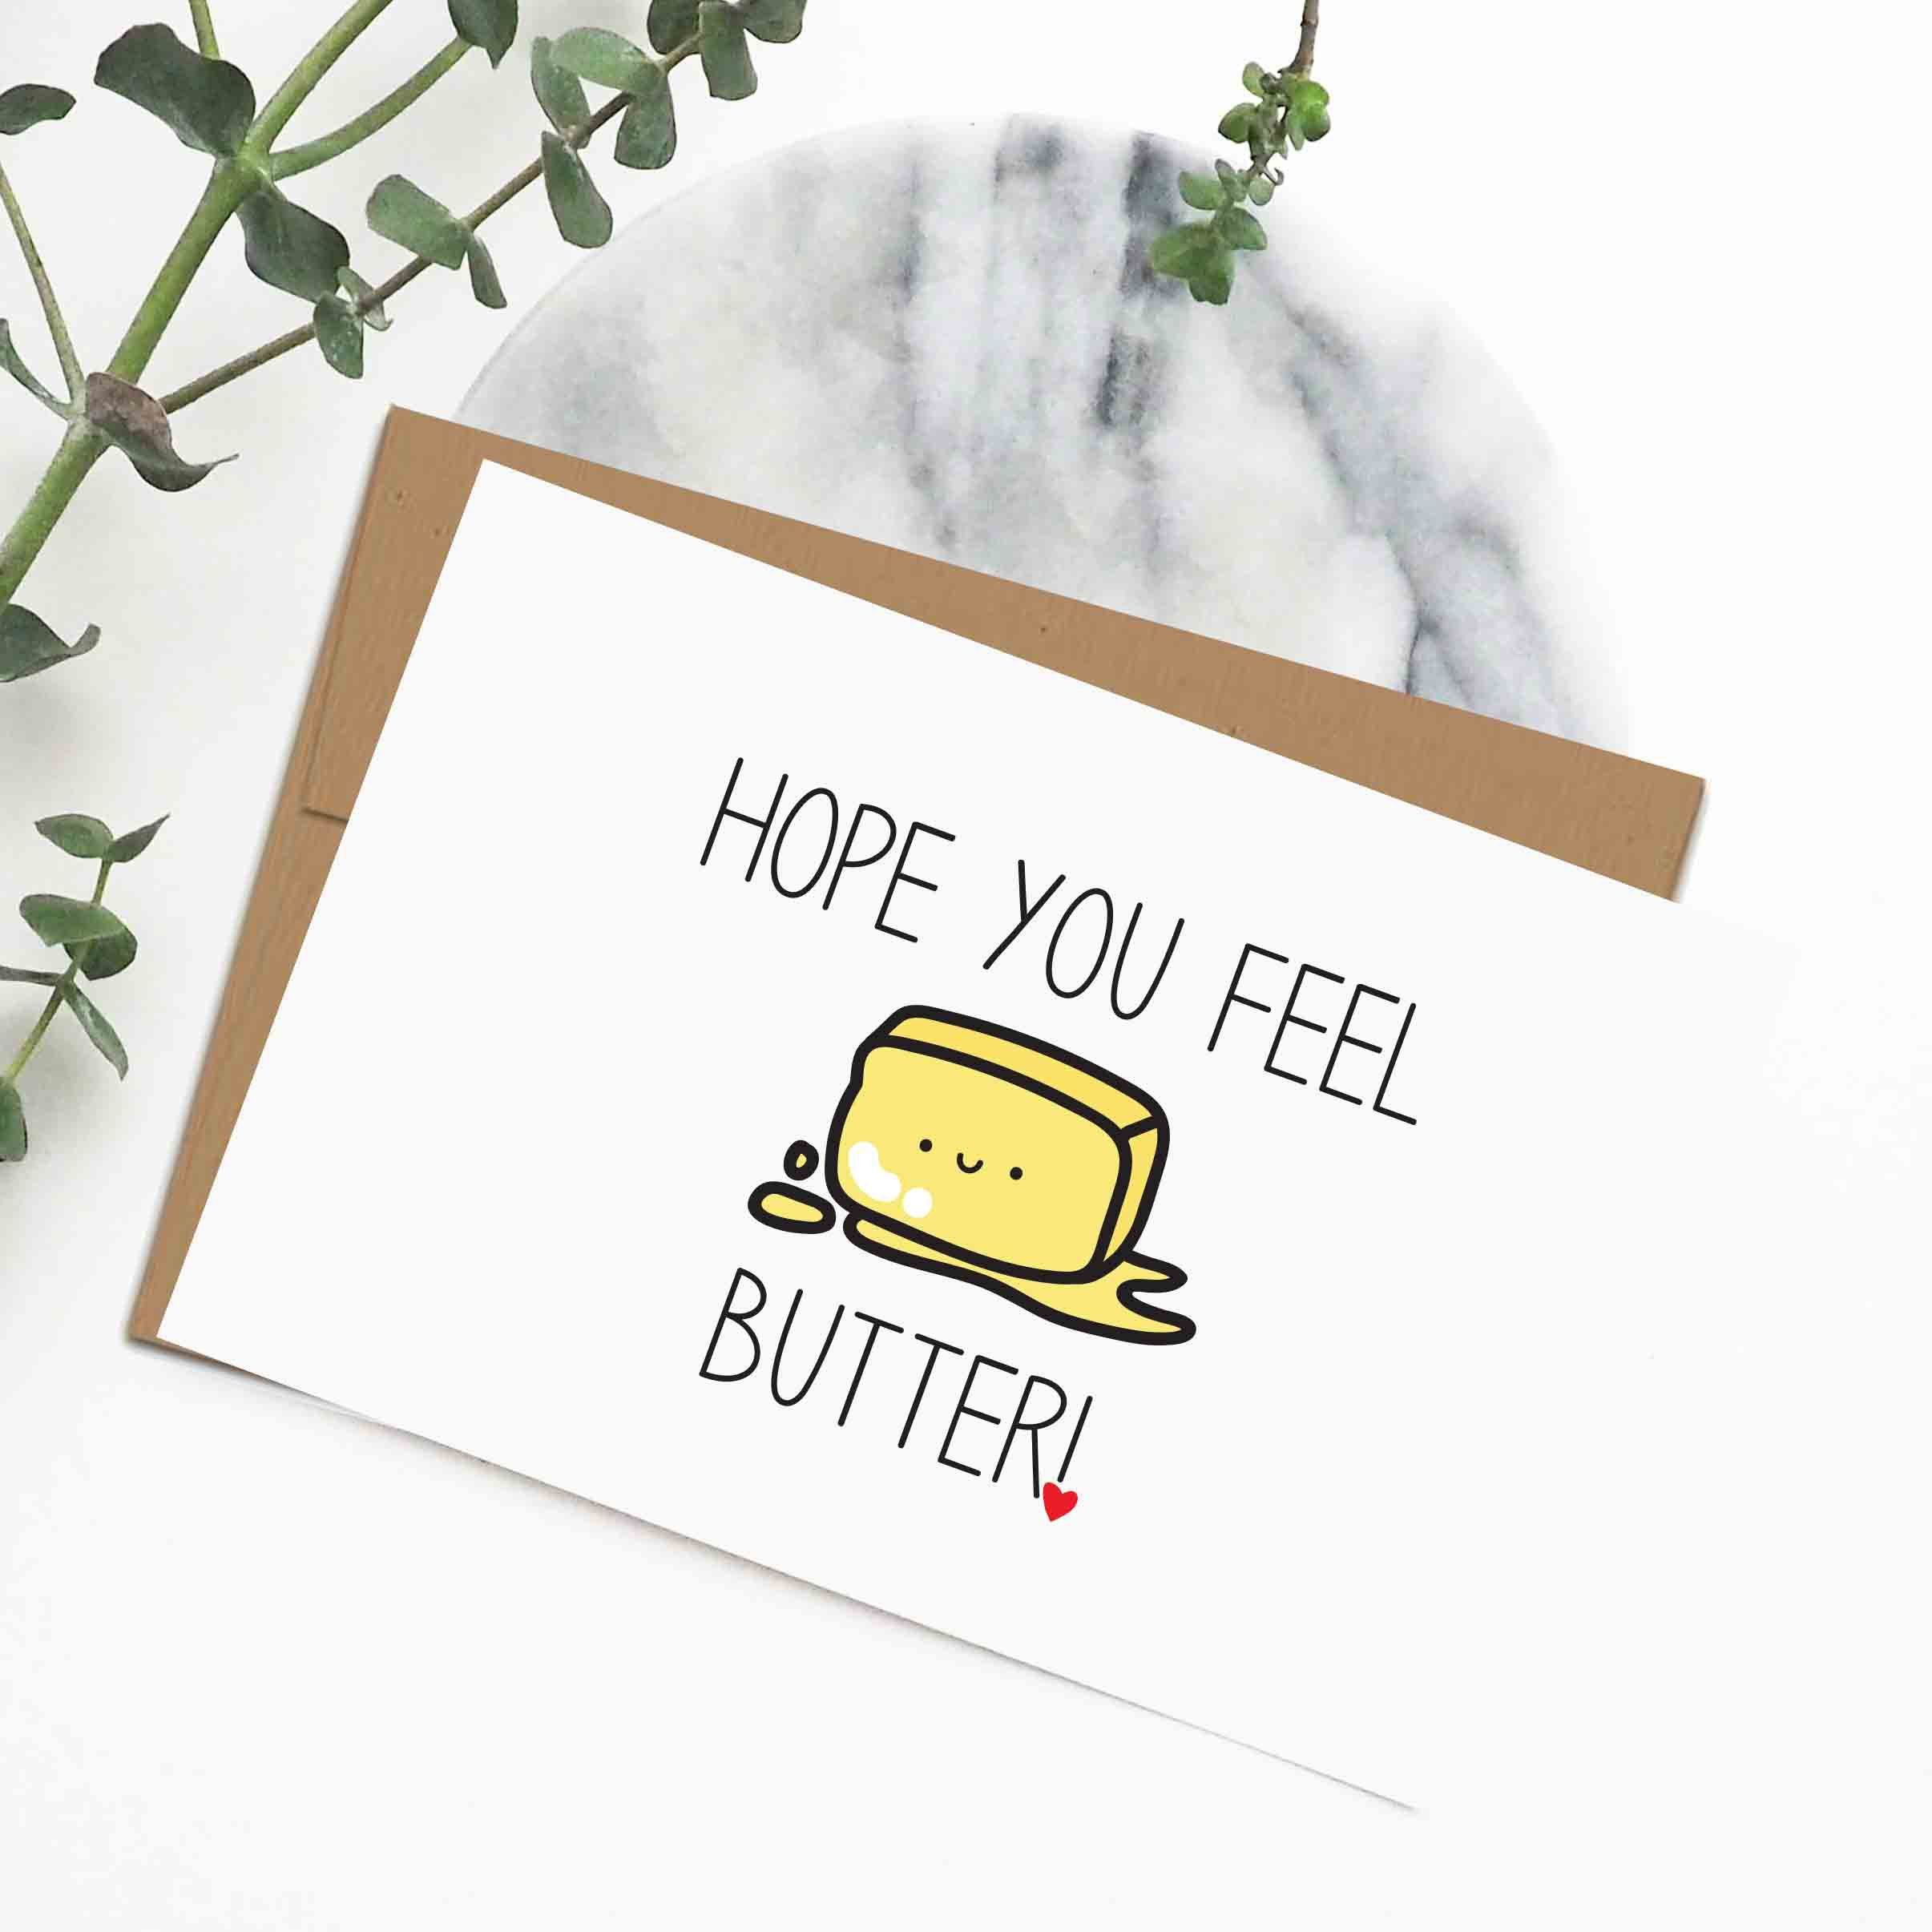 Feel better cards get well soon cards butter pun cards sympathy